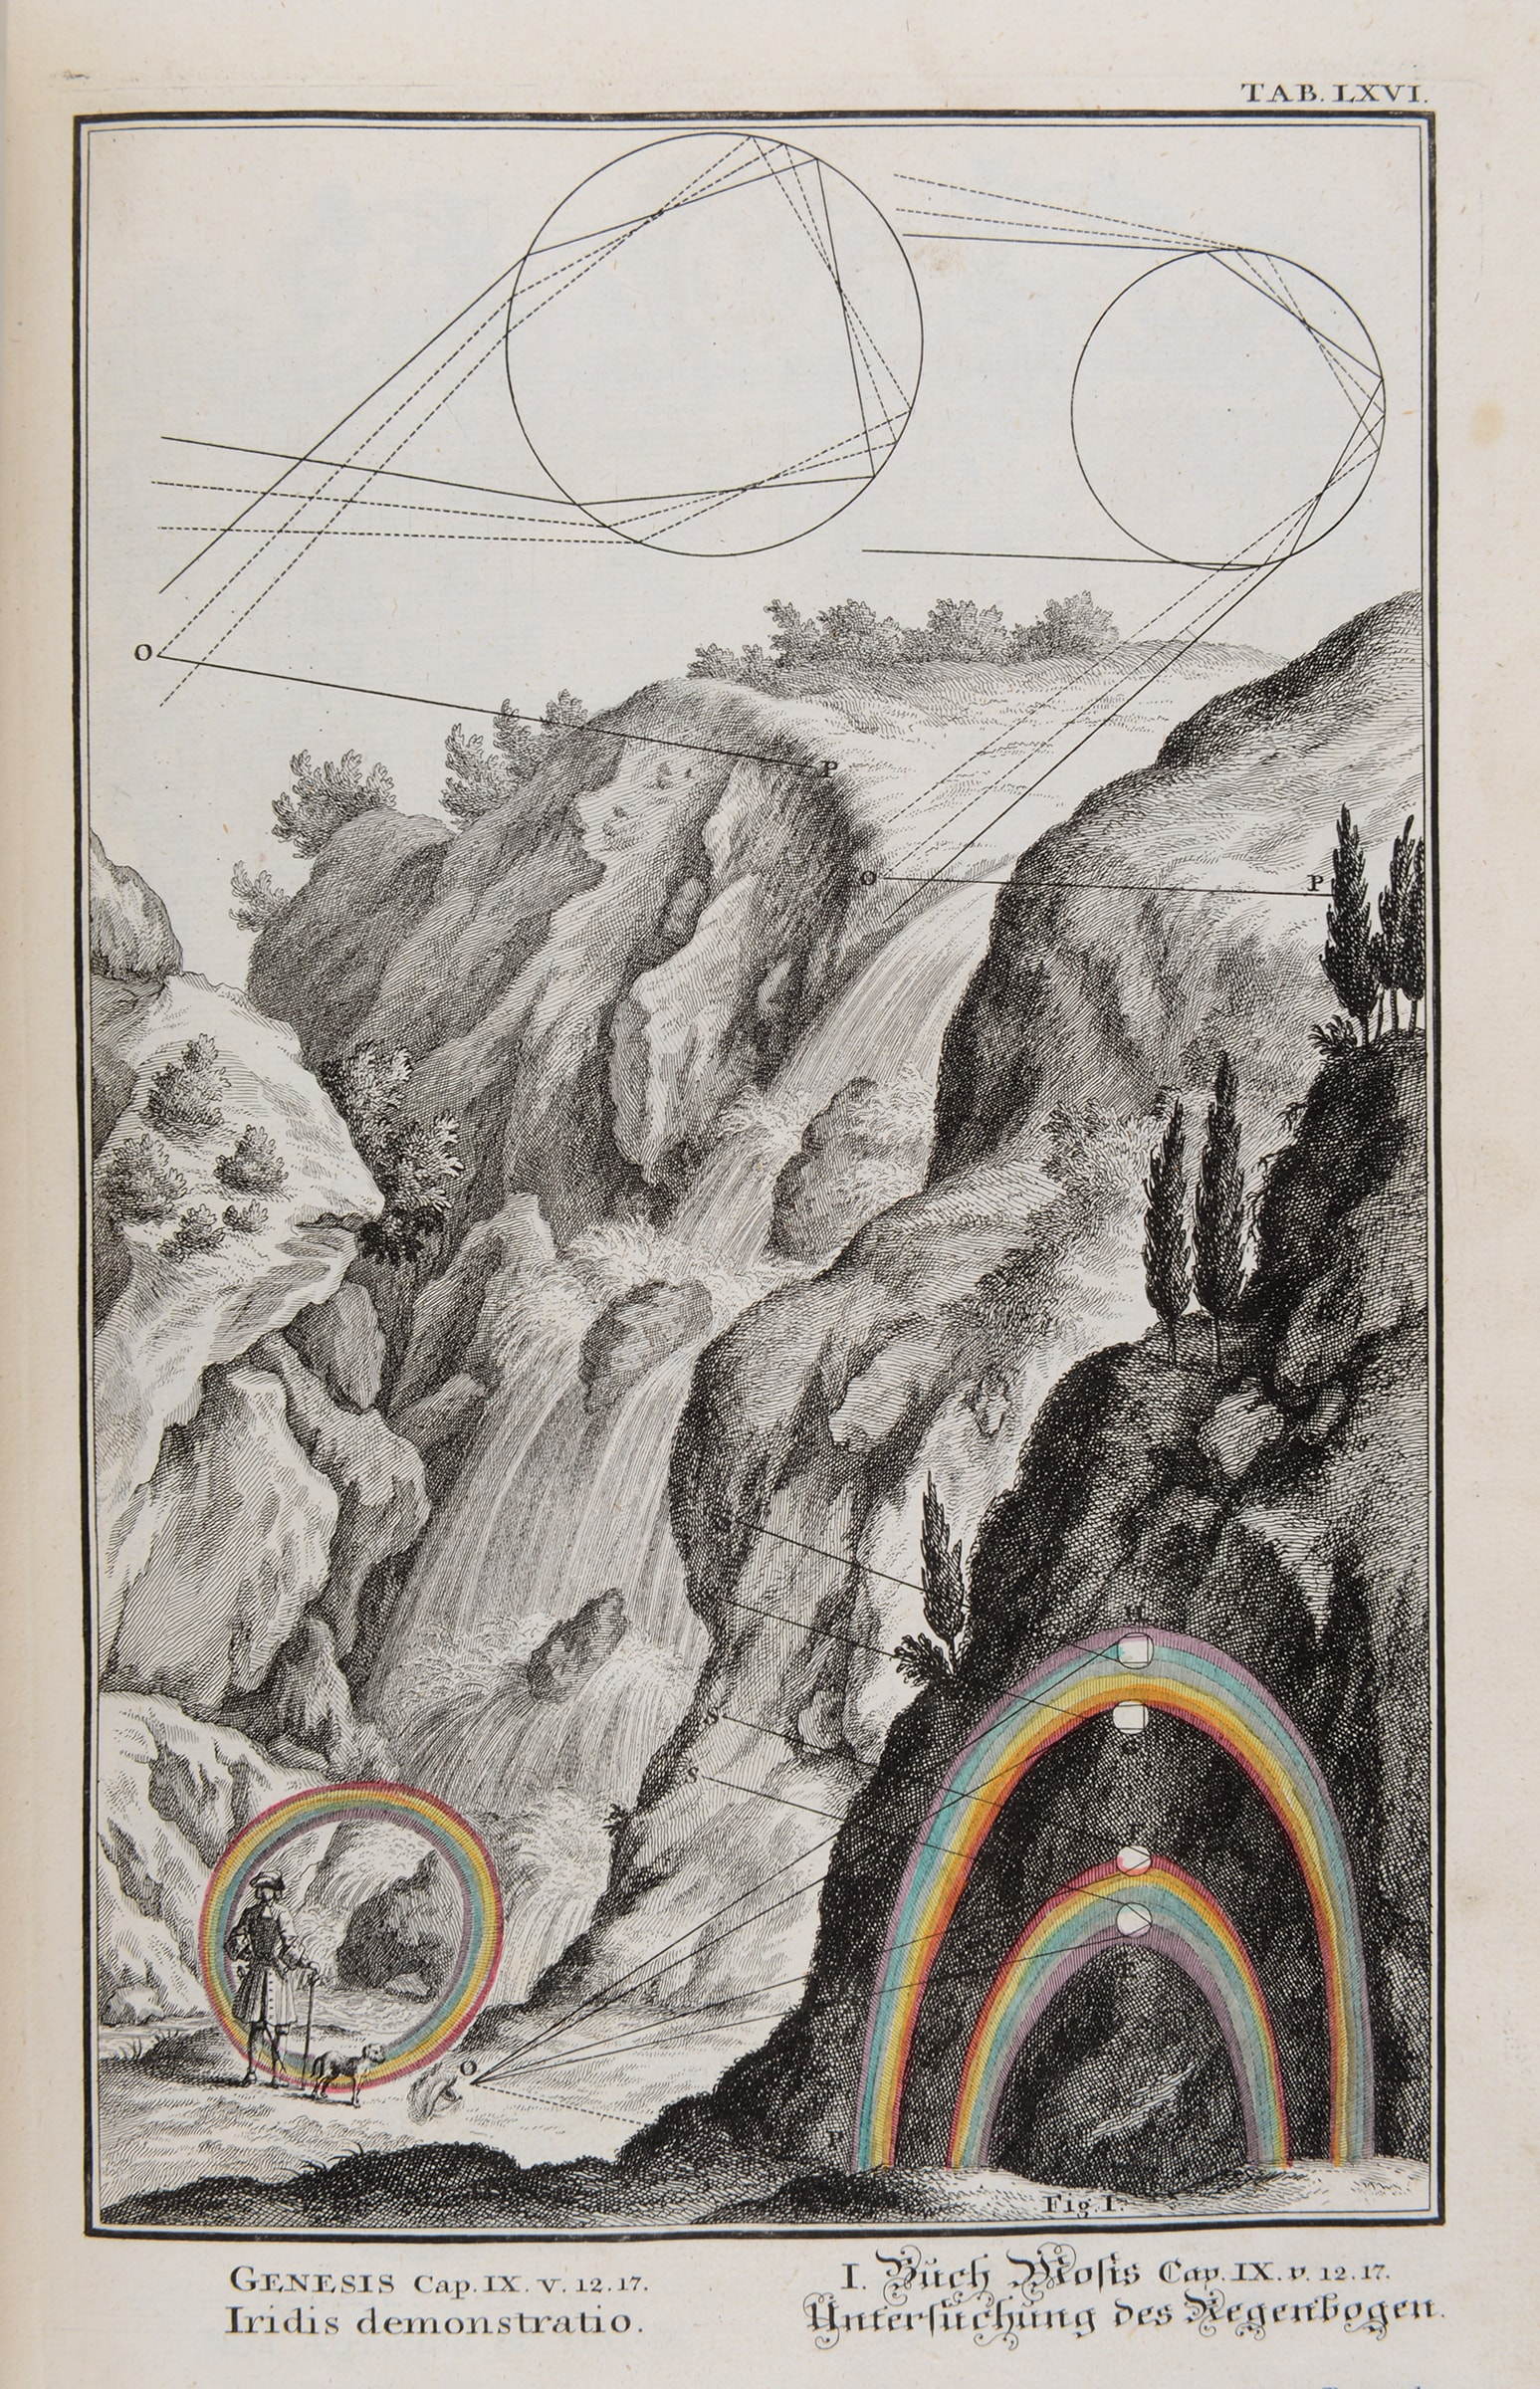 Old-world sketch of waterfall and rainbows refracting light.